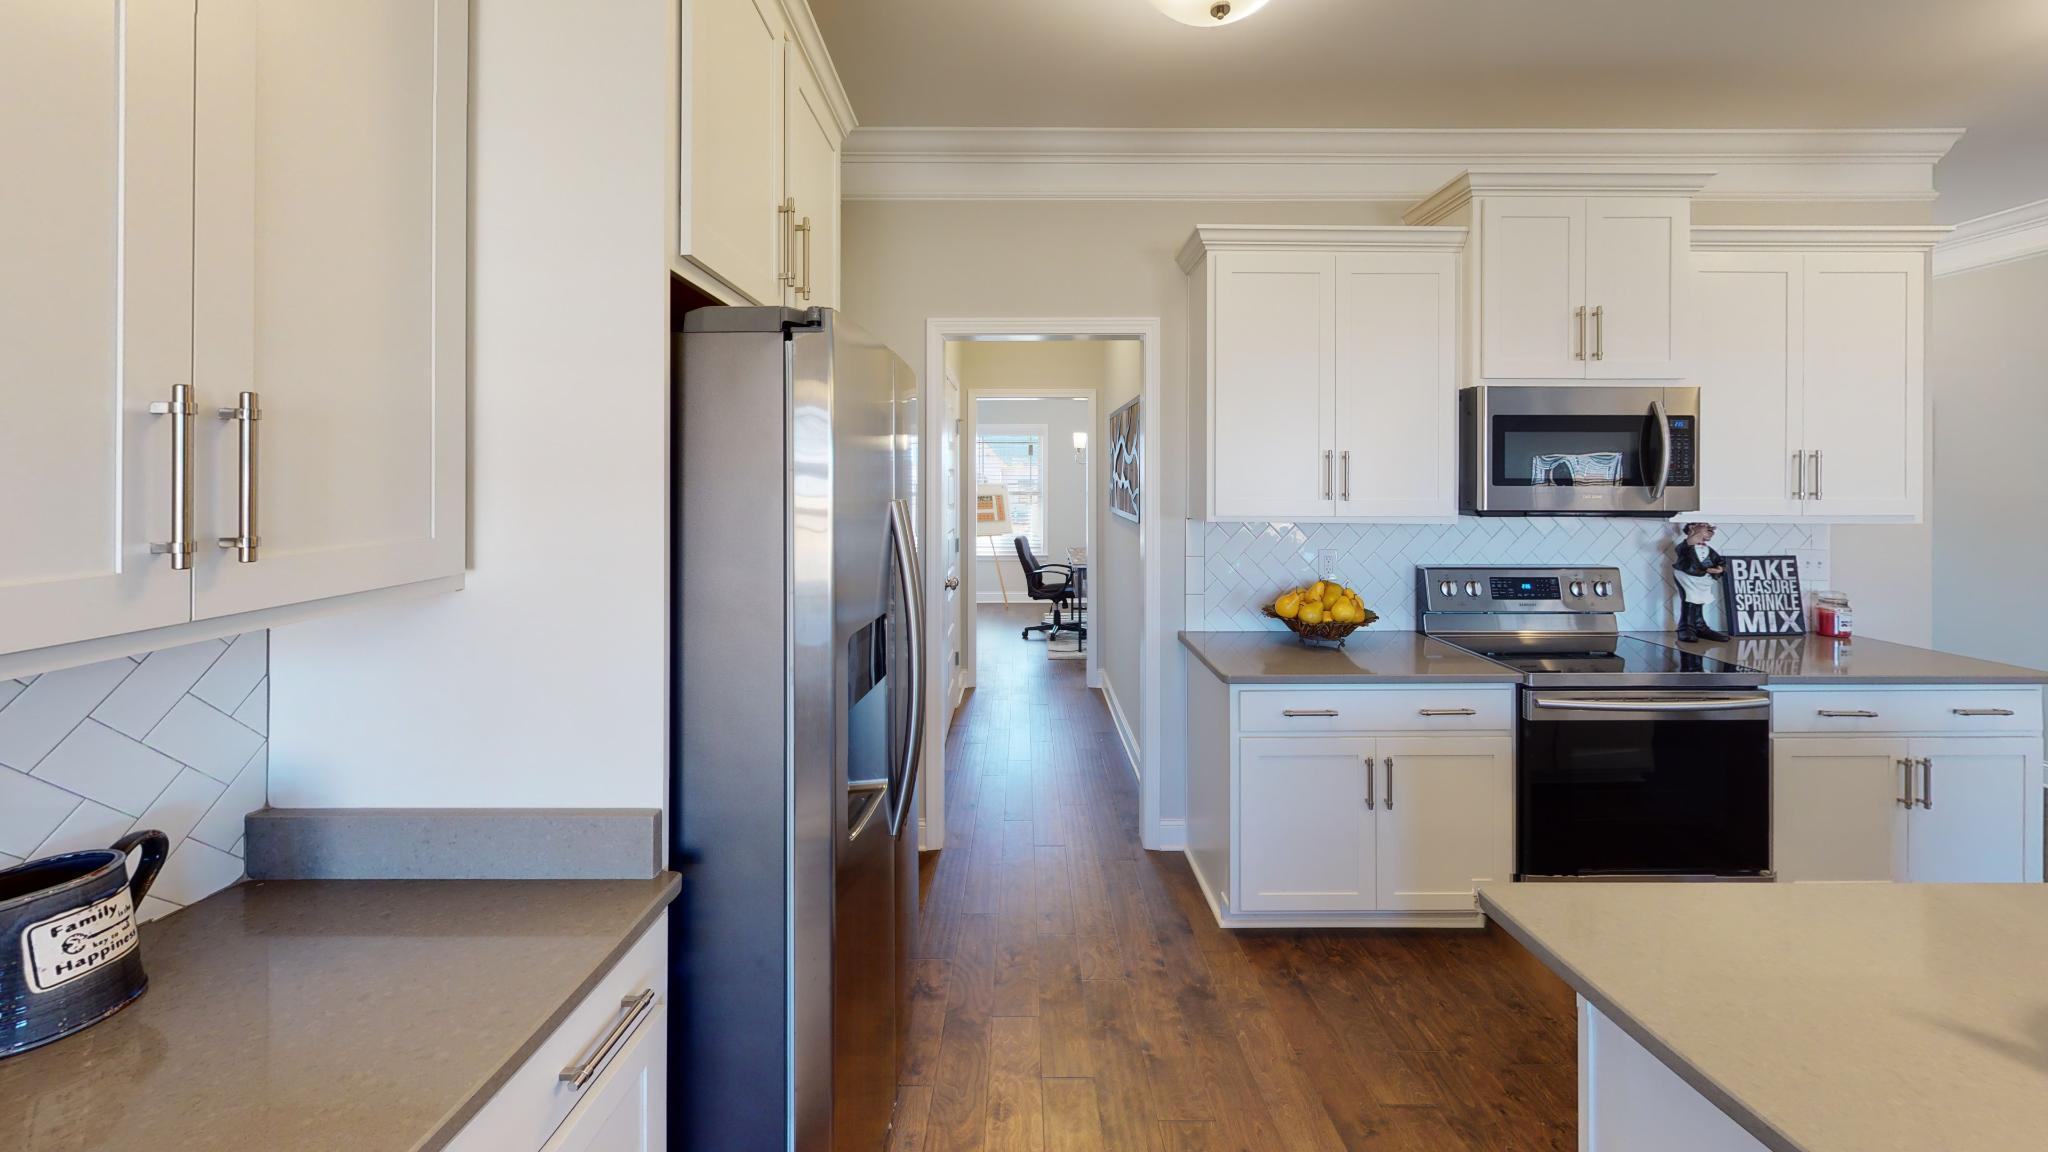 Kitchen featured in the 2770 Premier By Hyde Homes in Huntsville, AL